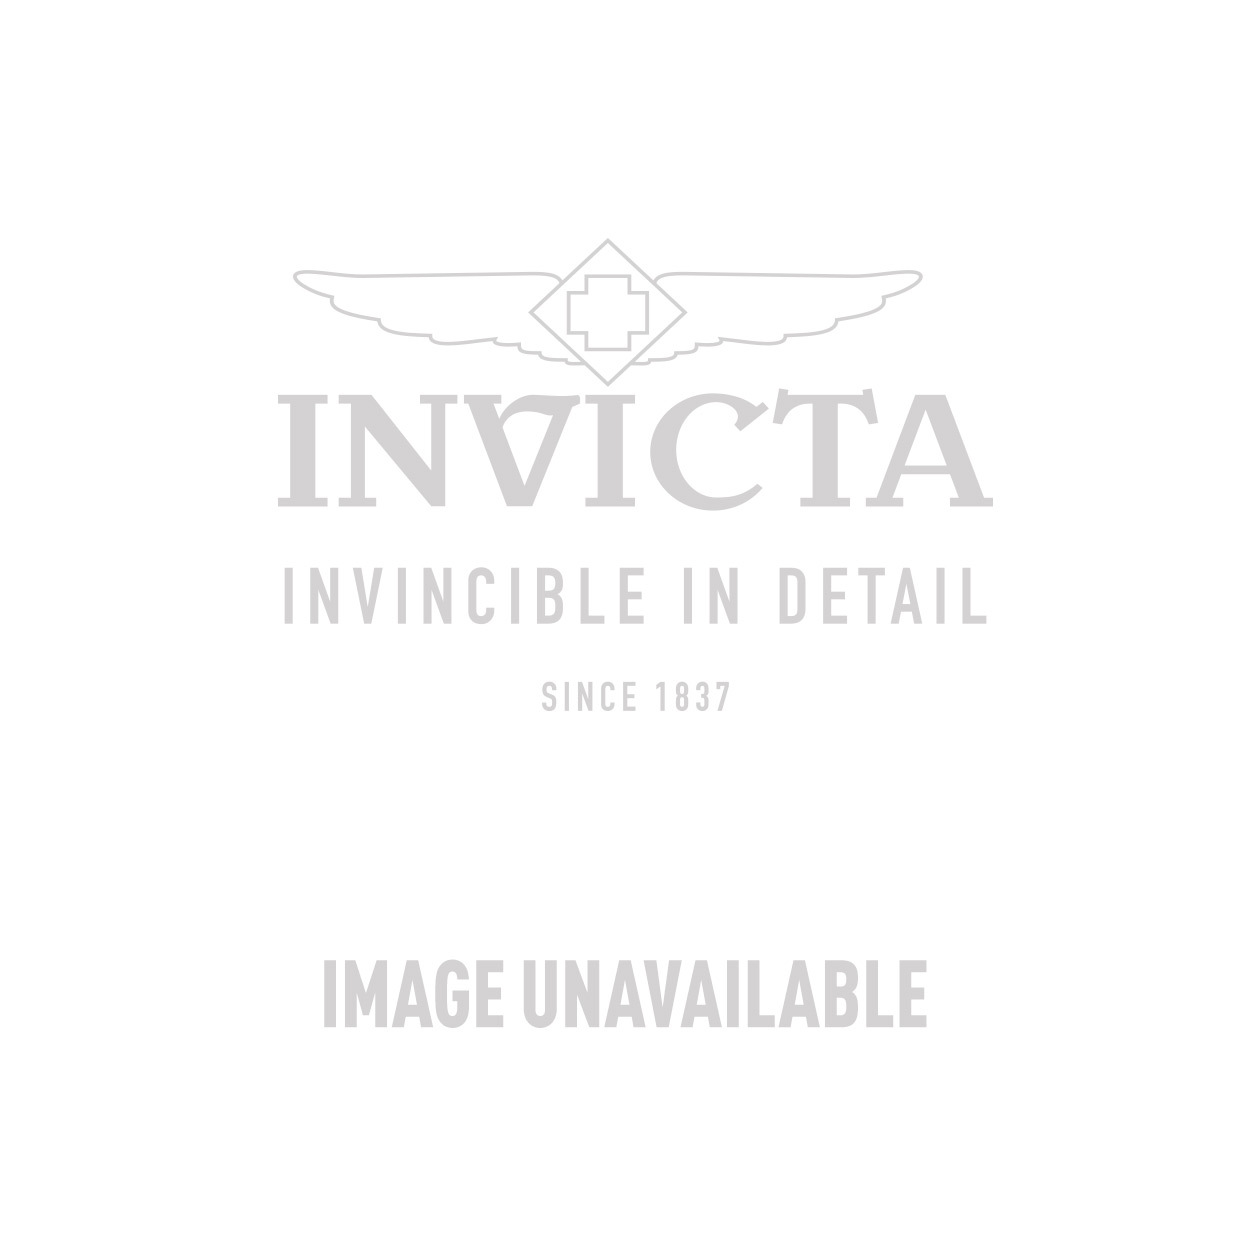 Invicta Pro Diver Automatic Watch - Stainless Steel case Stainless Steel band - Model 17586